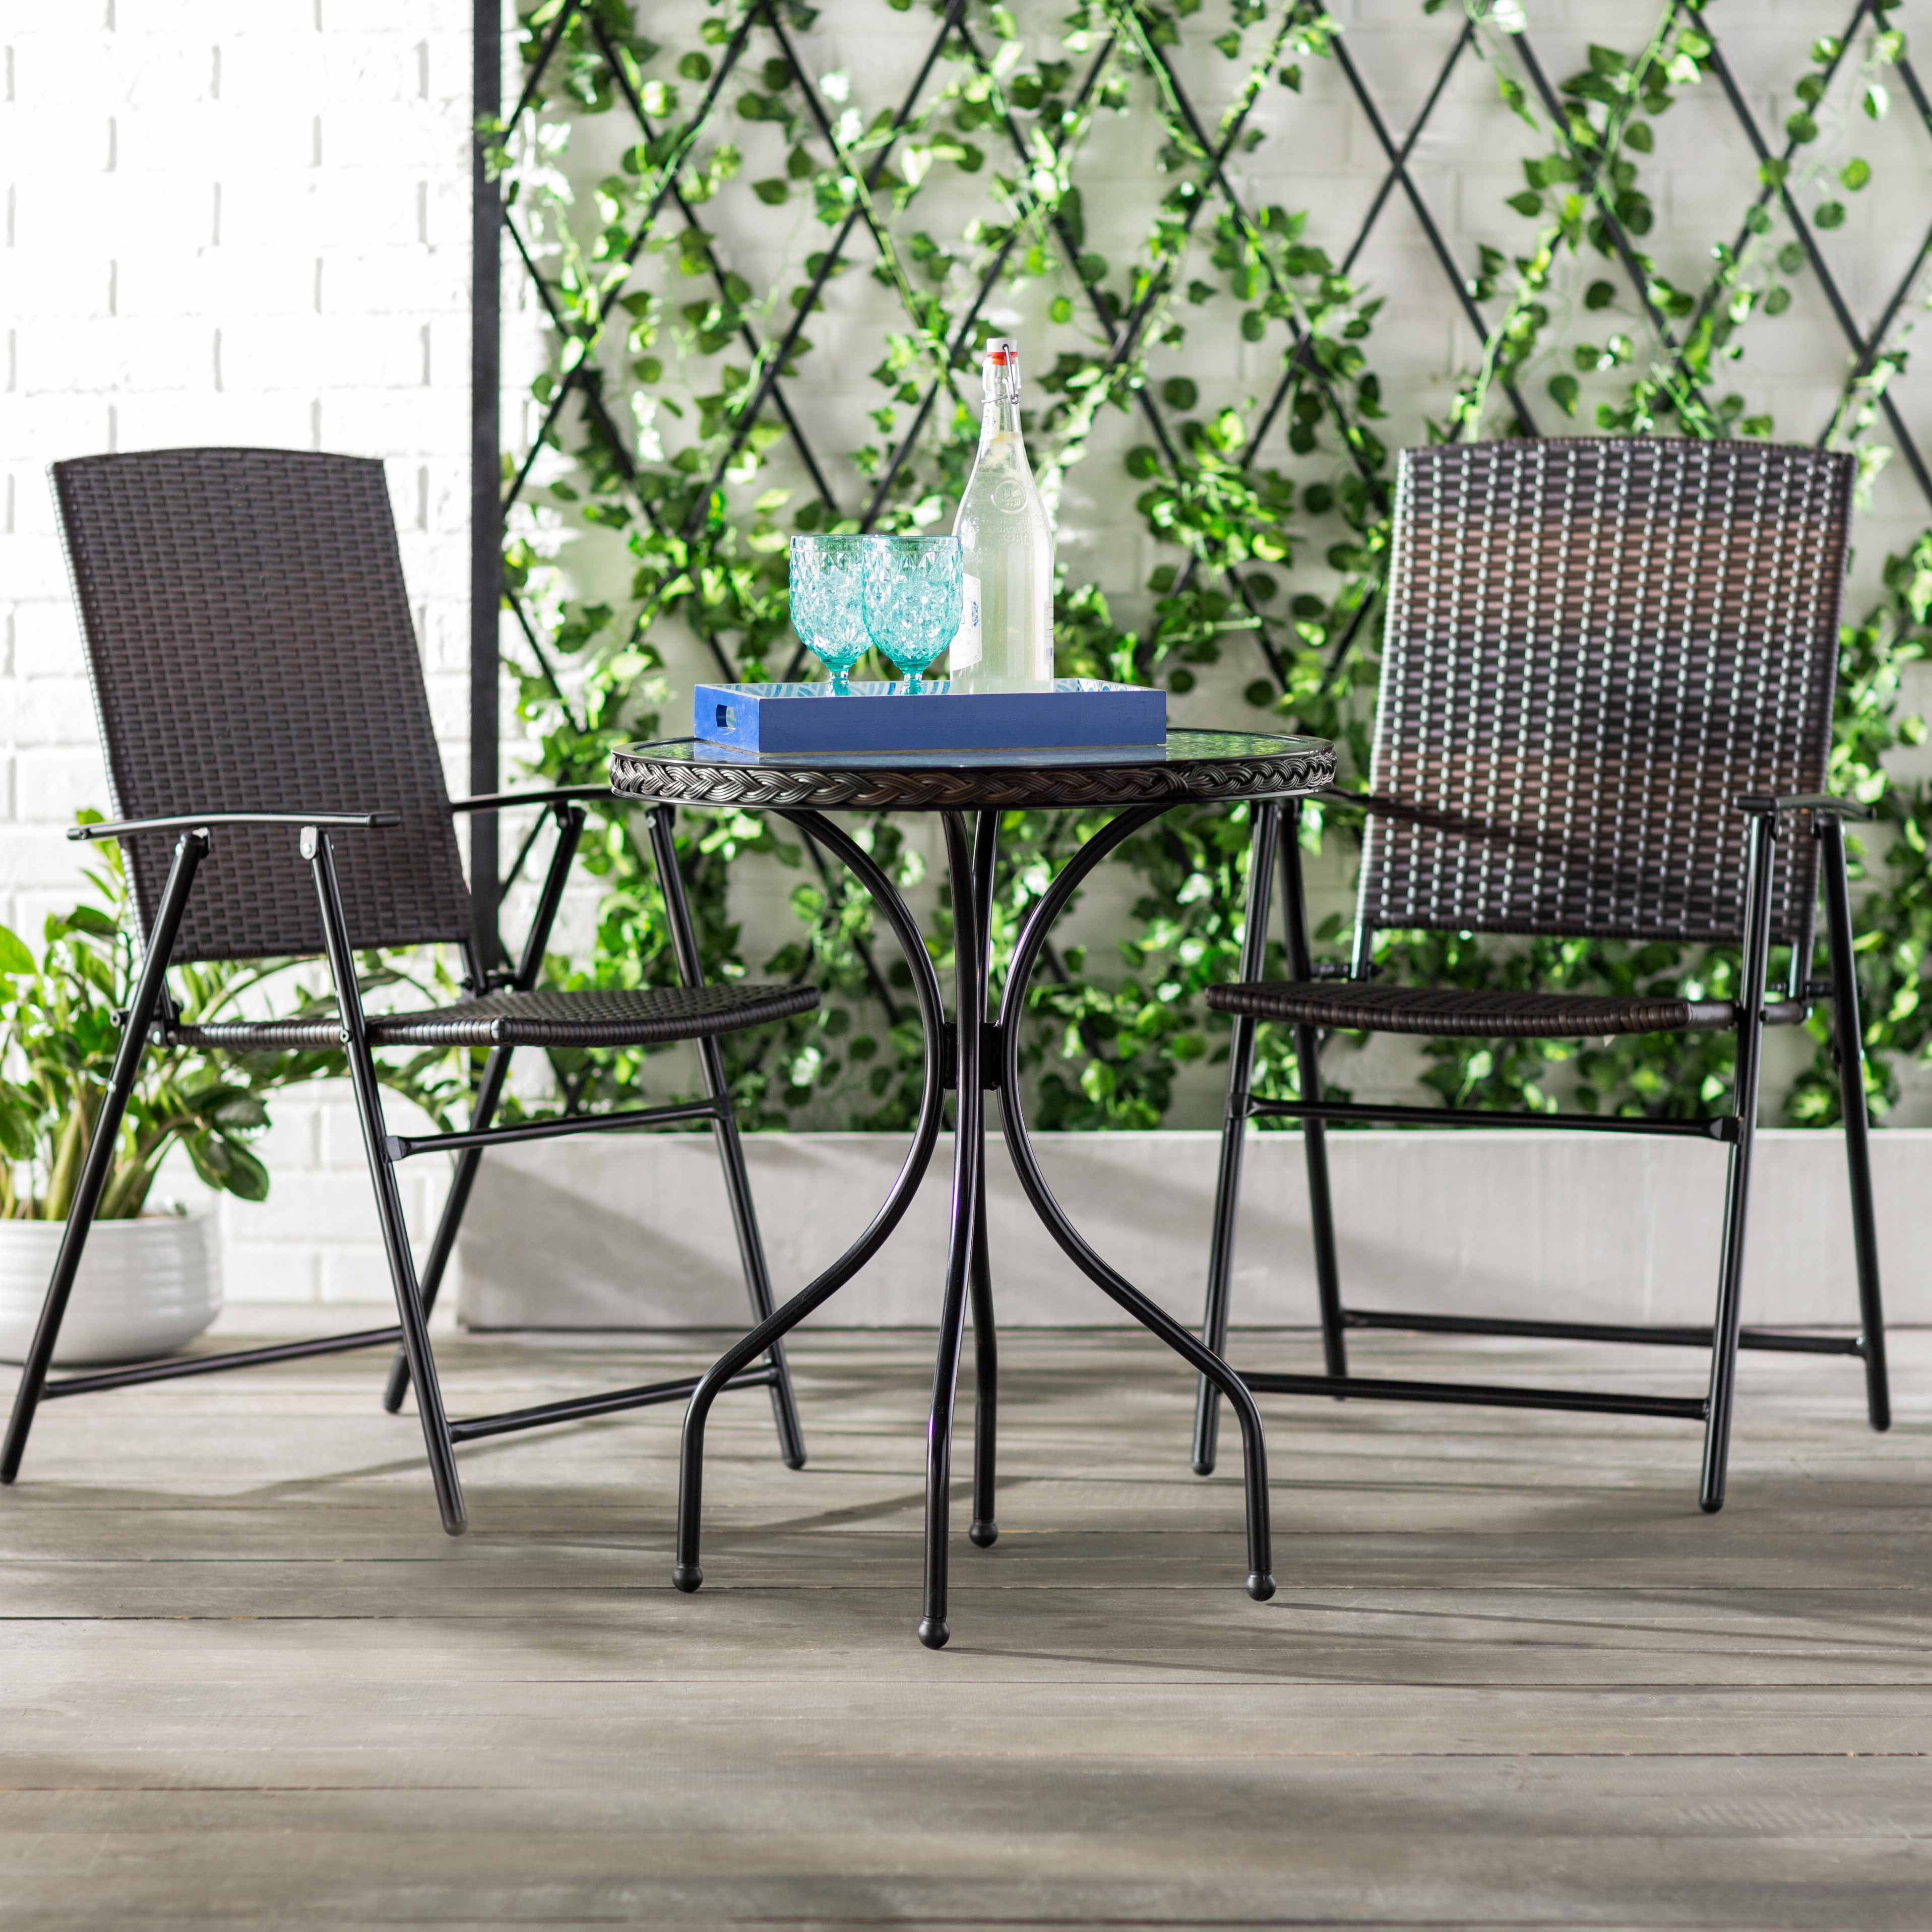 3 Piece Patio Lounger Sets Throughout Widely Used Gretchen Patio Wicker 3 Piece Bistro Set (View 7 of 25)